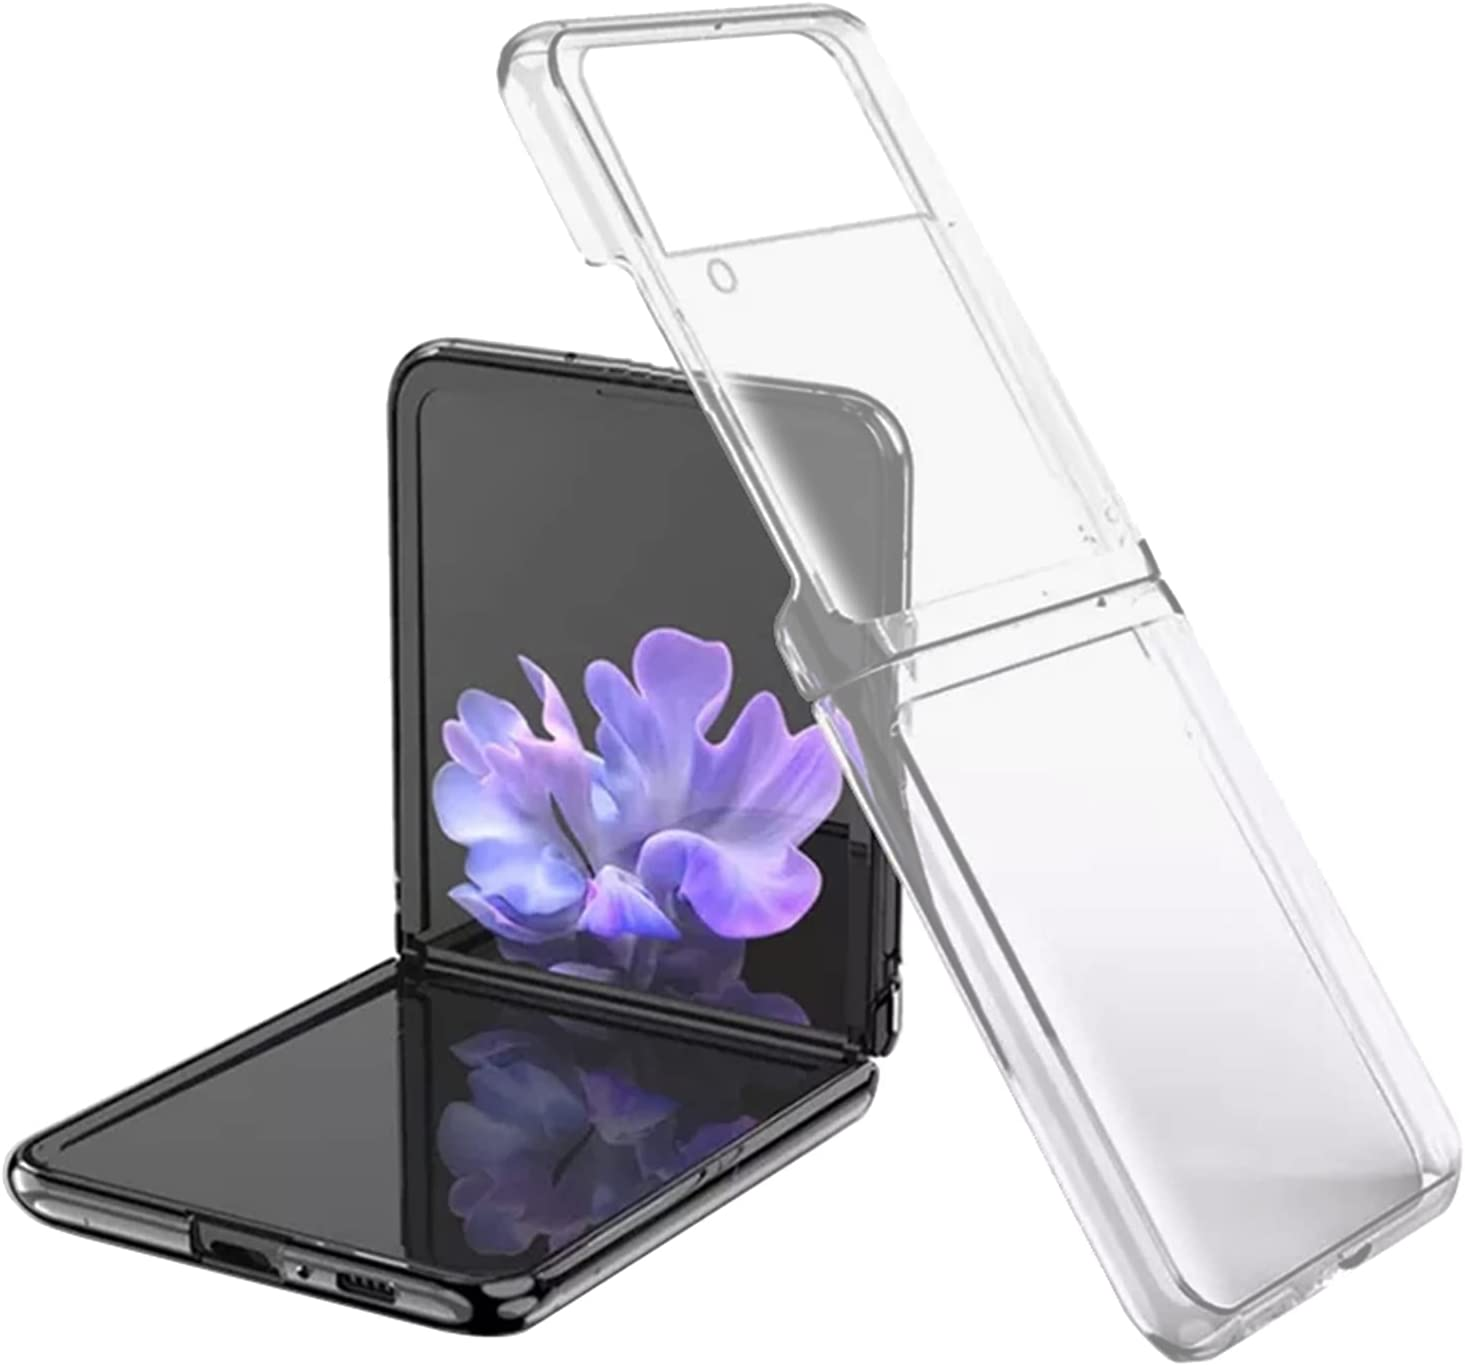 Phone Case for Galaxy Z Flip 3, Ultra Thin PC Hard Full Protection Case Compatible with Samsung Galaxy Z Flip 3 5G (Matte)